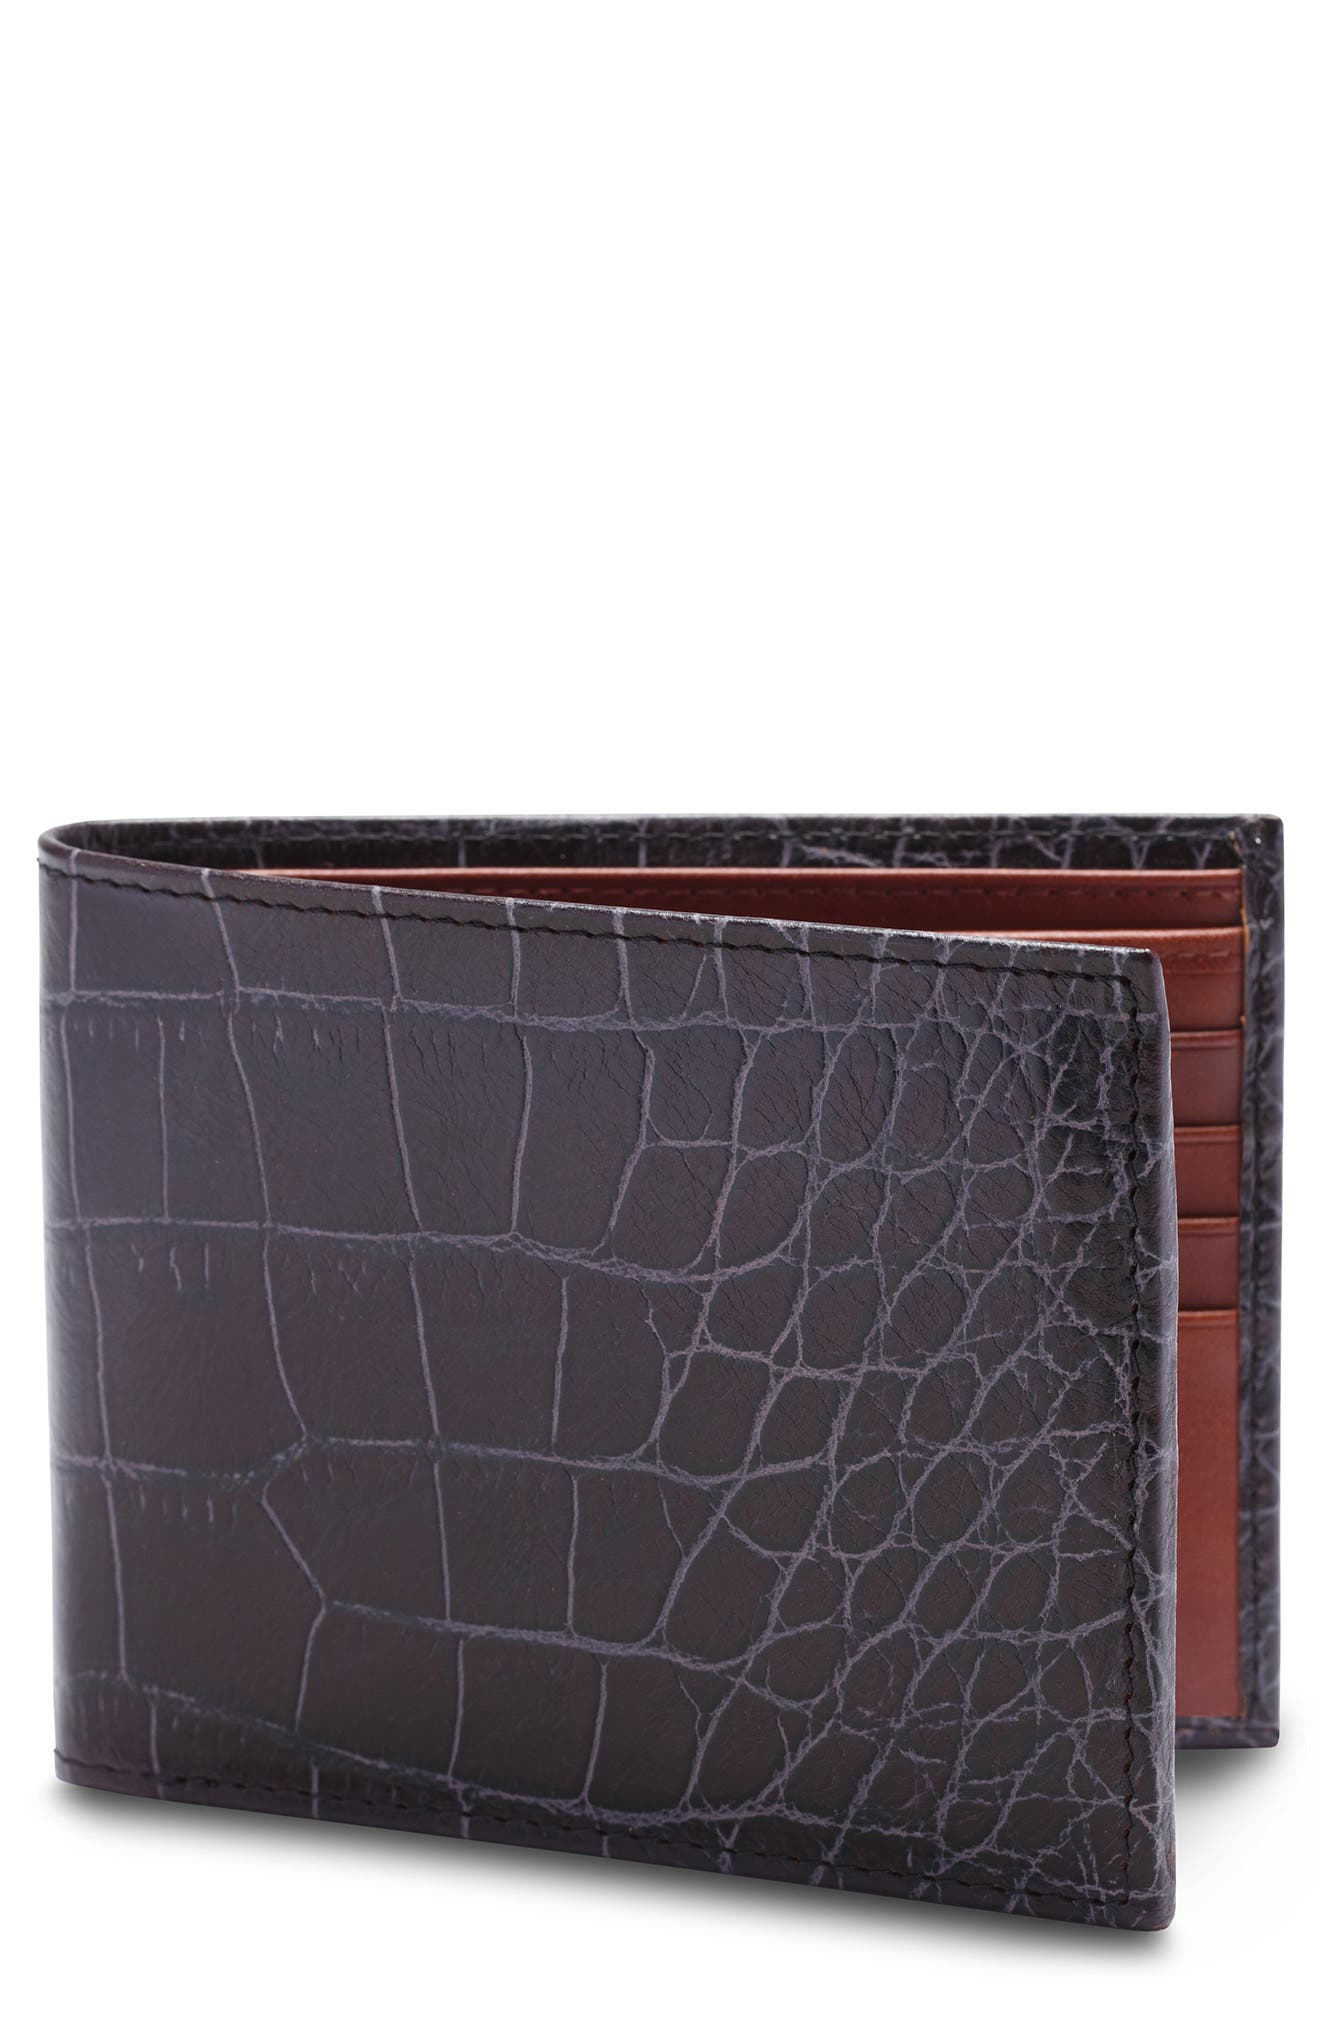 Croc Embossed Executive Leather Wallet